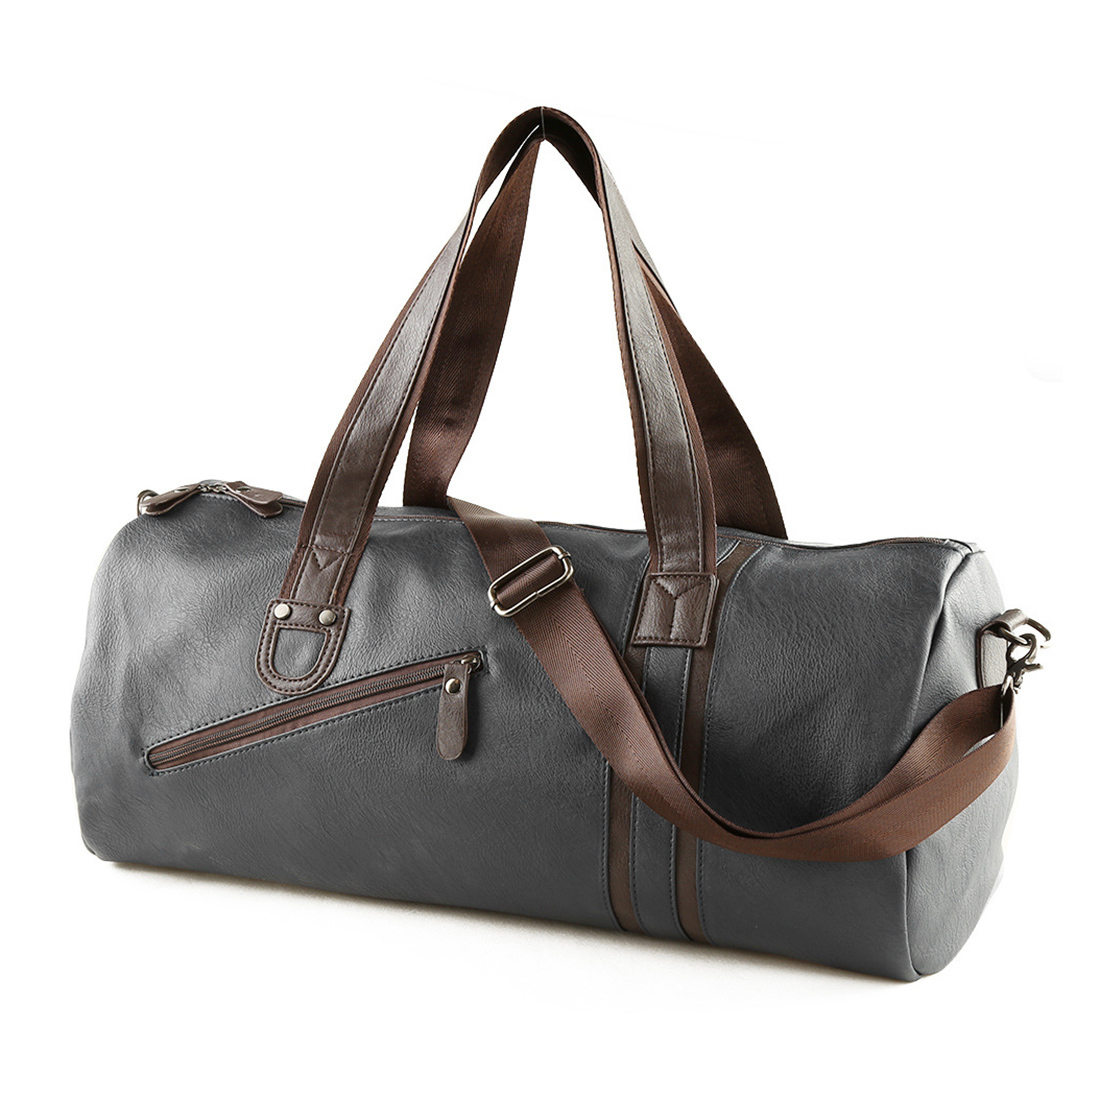 08834d2f097df7 Large Capacity Outdoor Men's Sports Bag PU Leather Tote Duffel Bag  Multifunction Portable Travel Sports Gym Fitness Bag